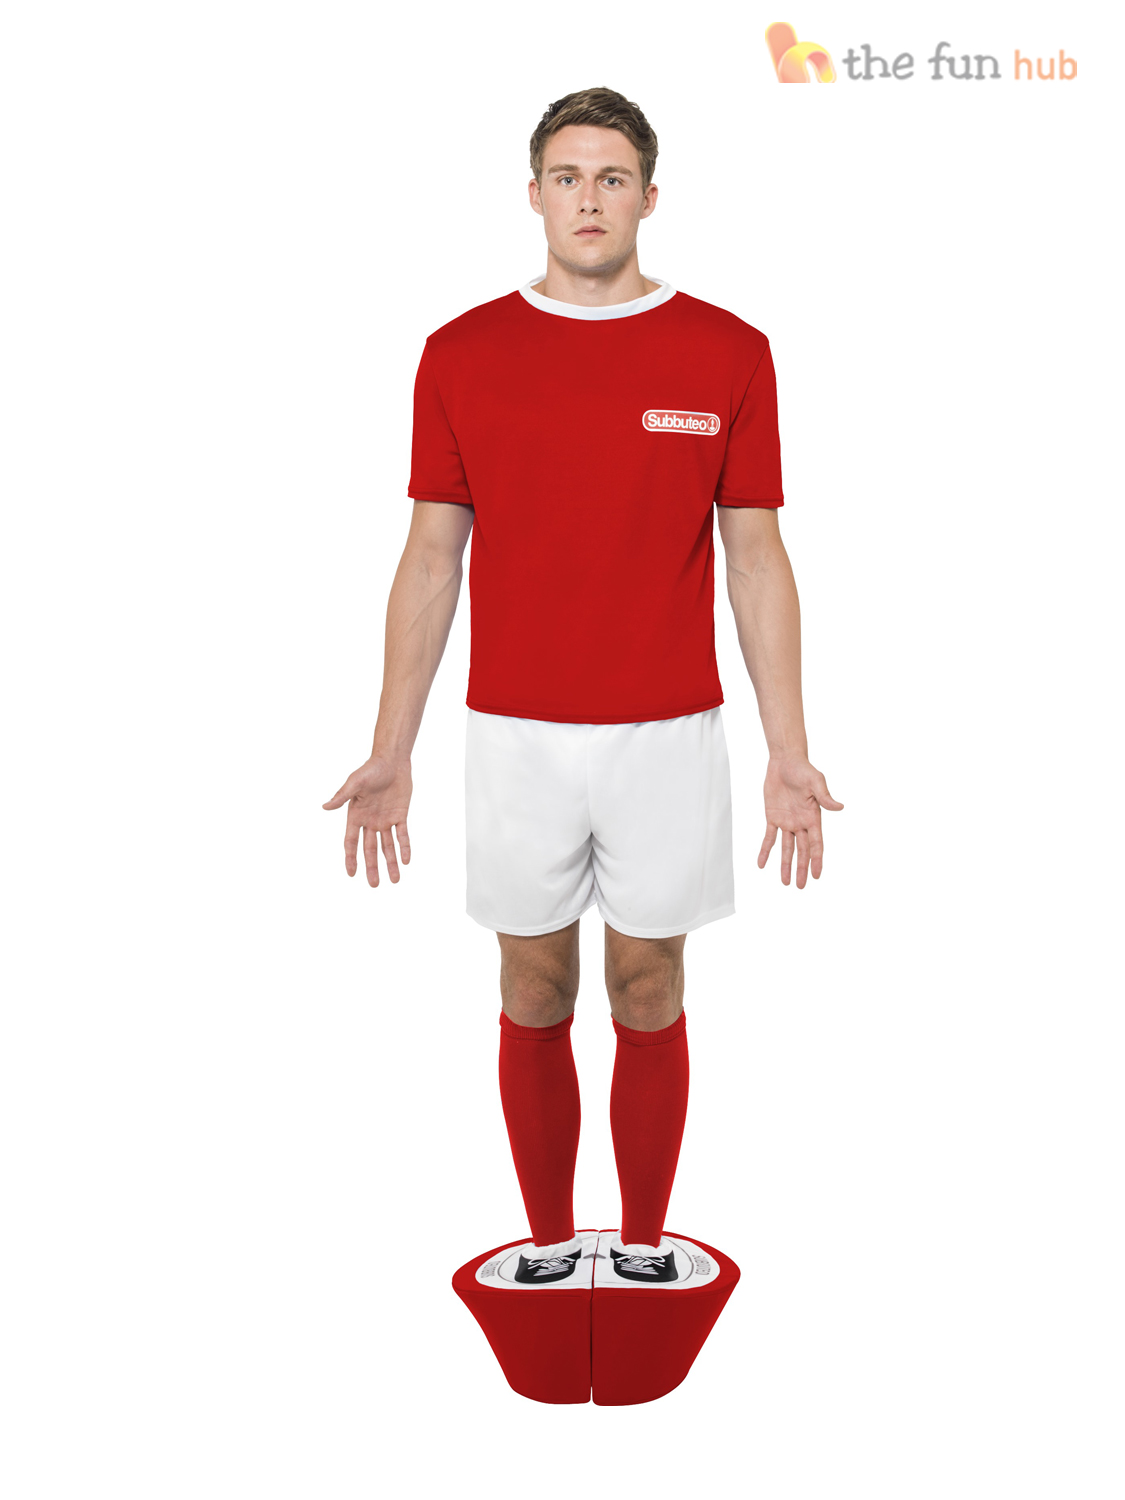 Subbuteo Strip Costume Mens Football Kit Sports Fancy Dress 80s Funny Stag Party | eBay